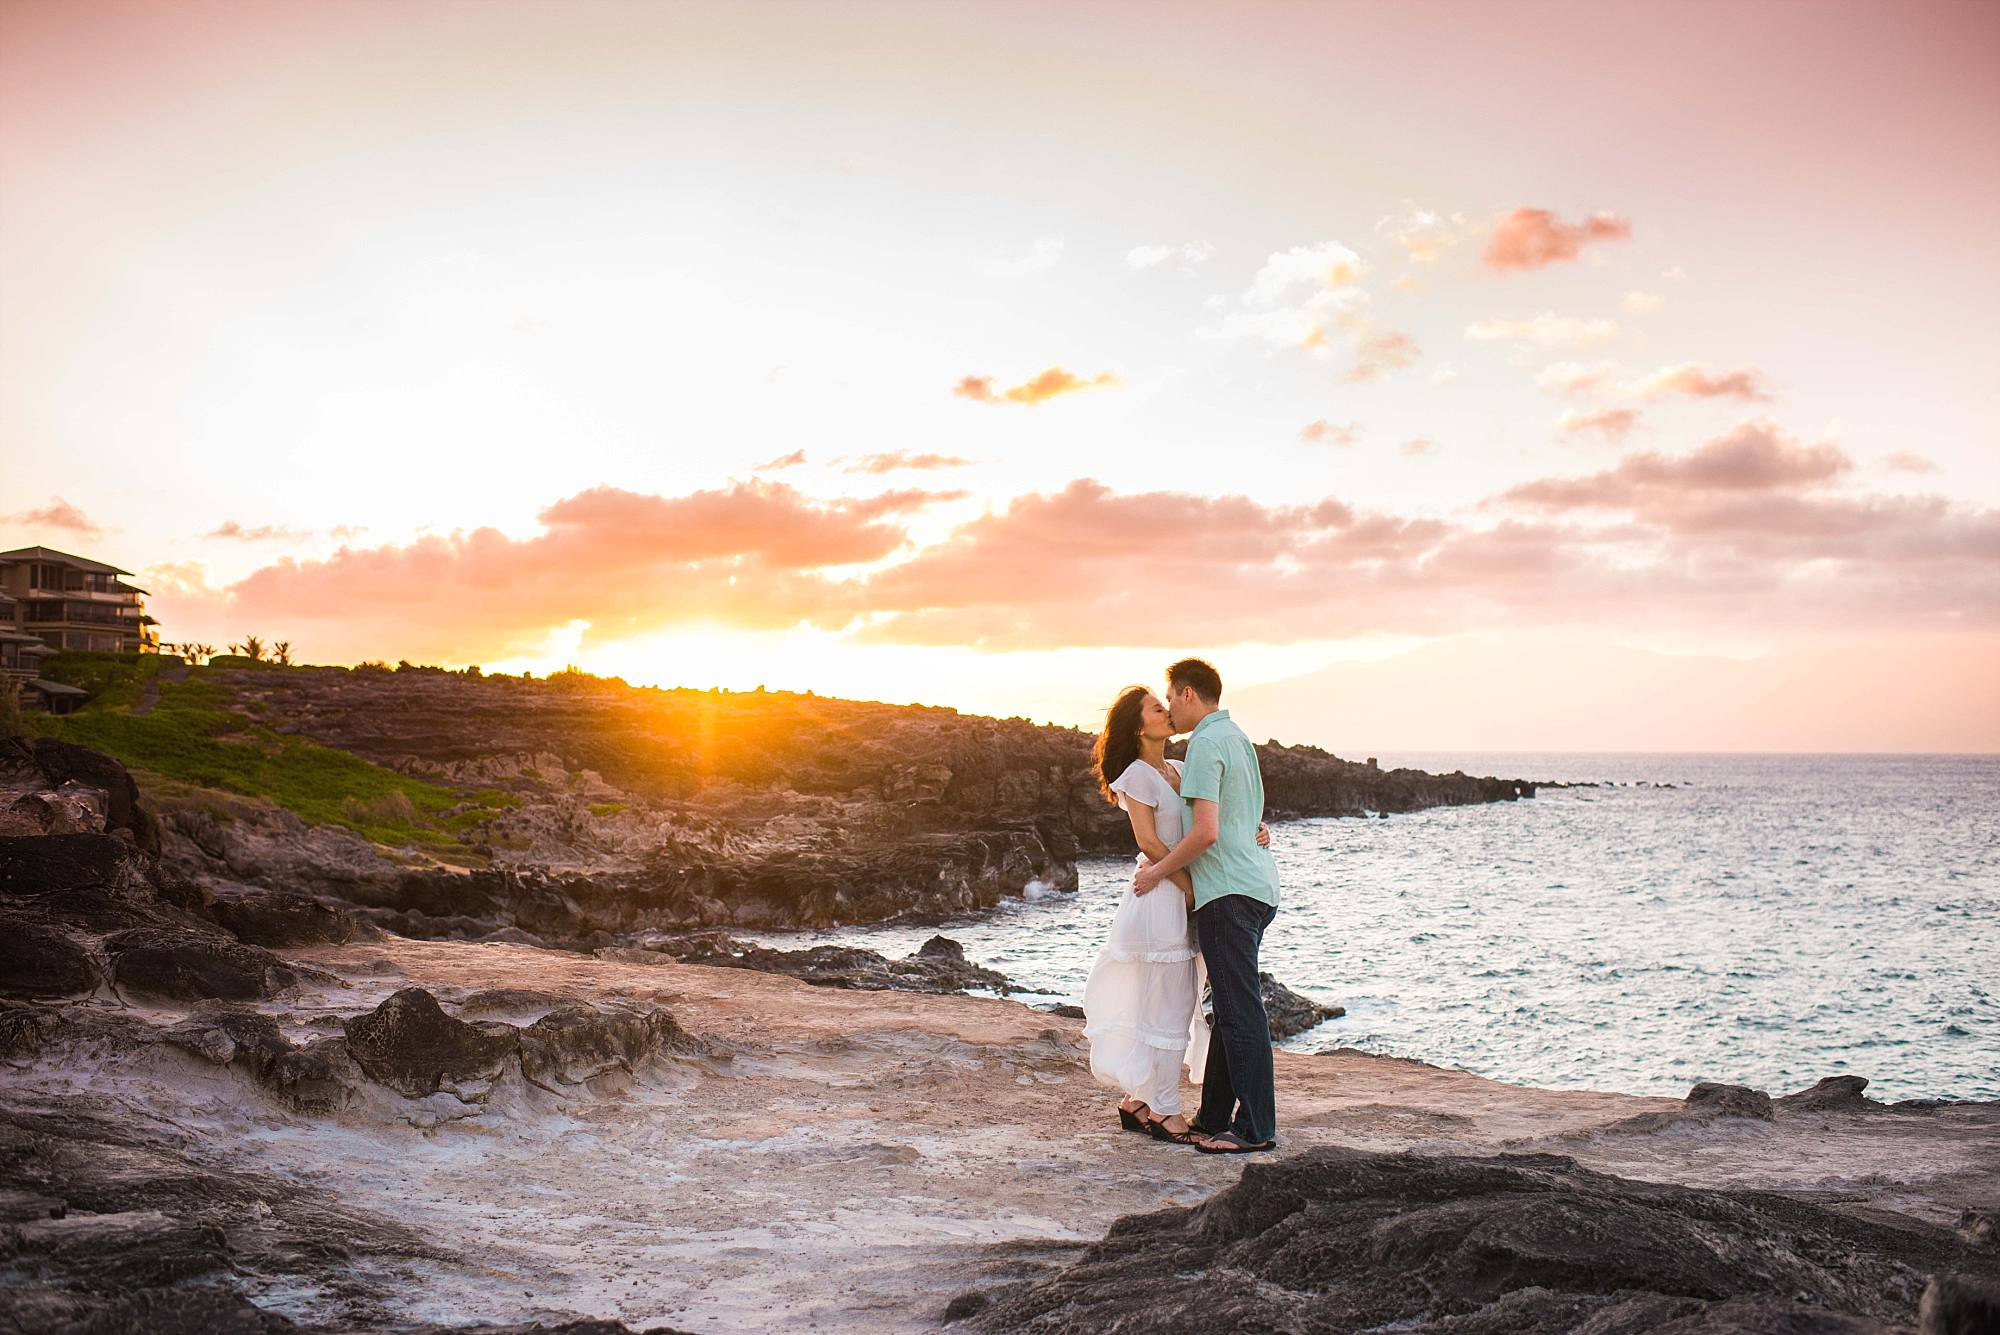 amazing sunset hitting the rocks, couple kissing on cliff